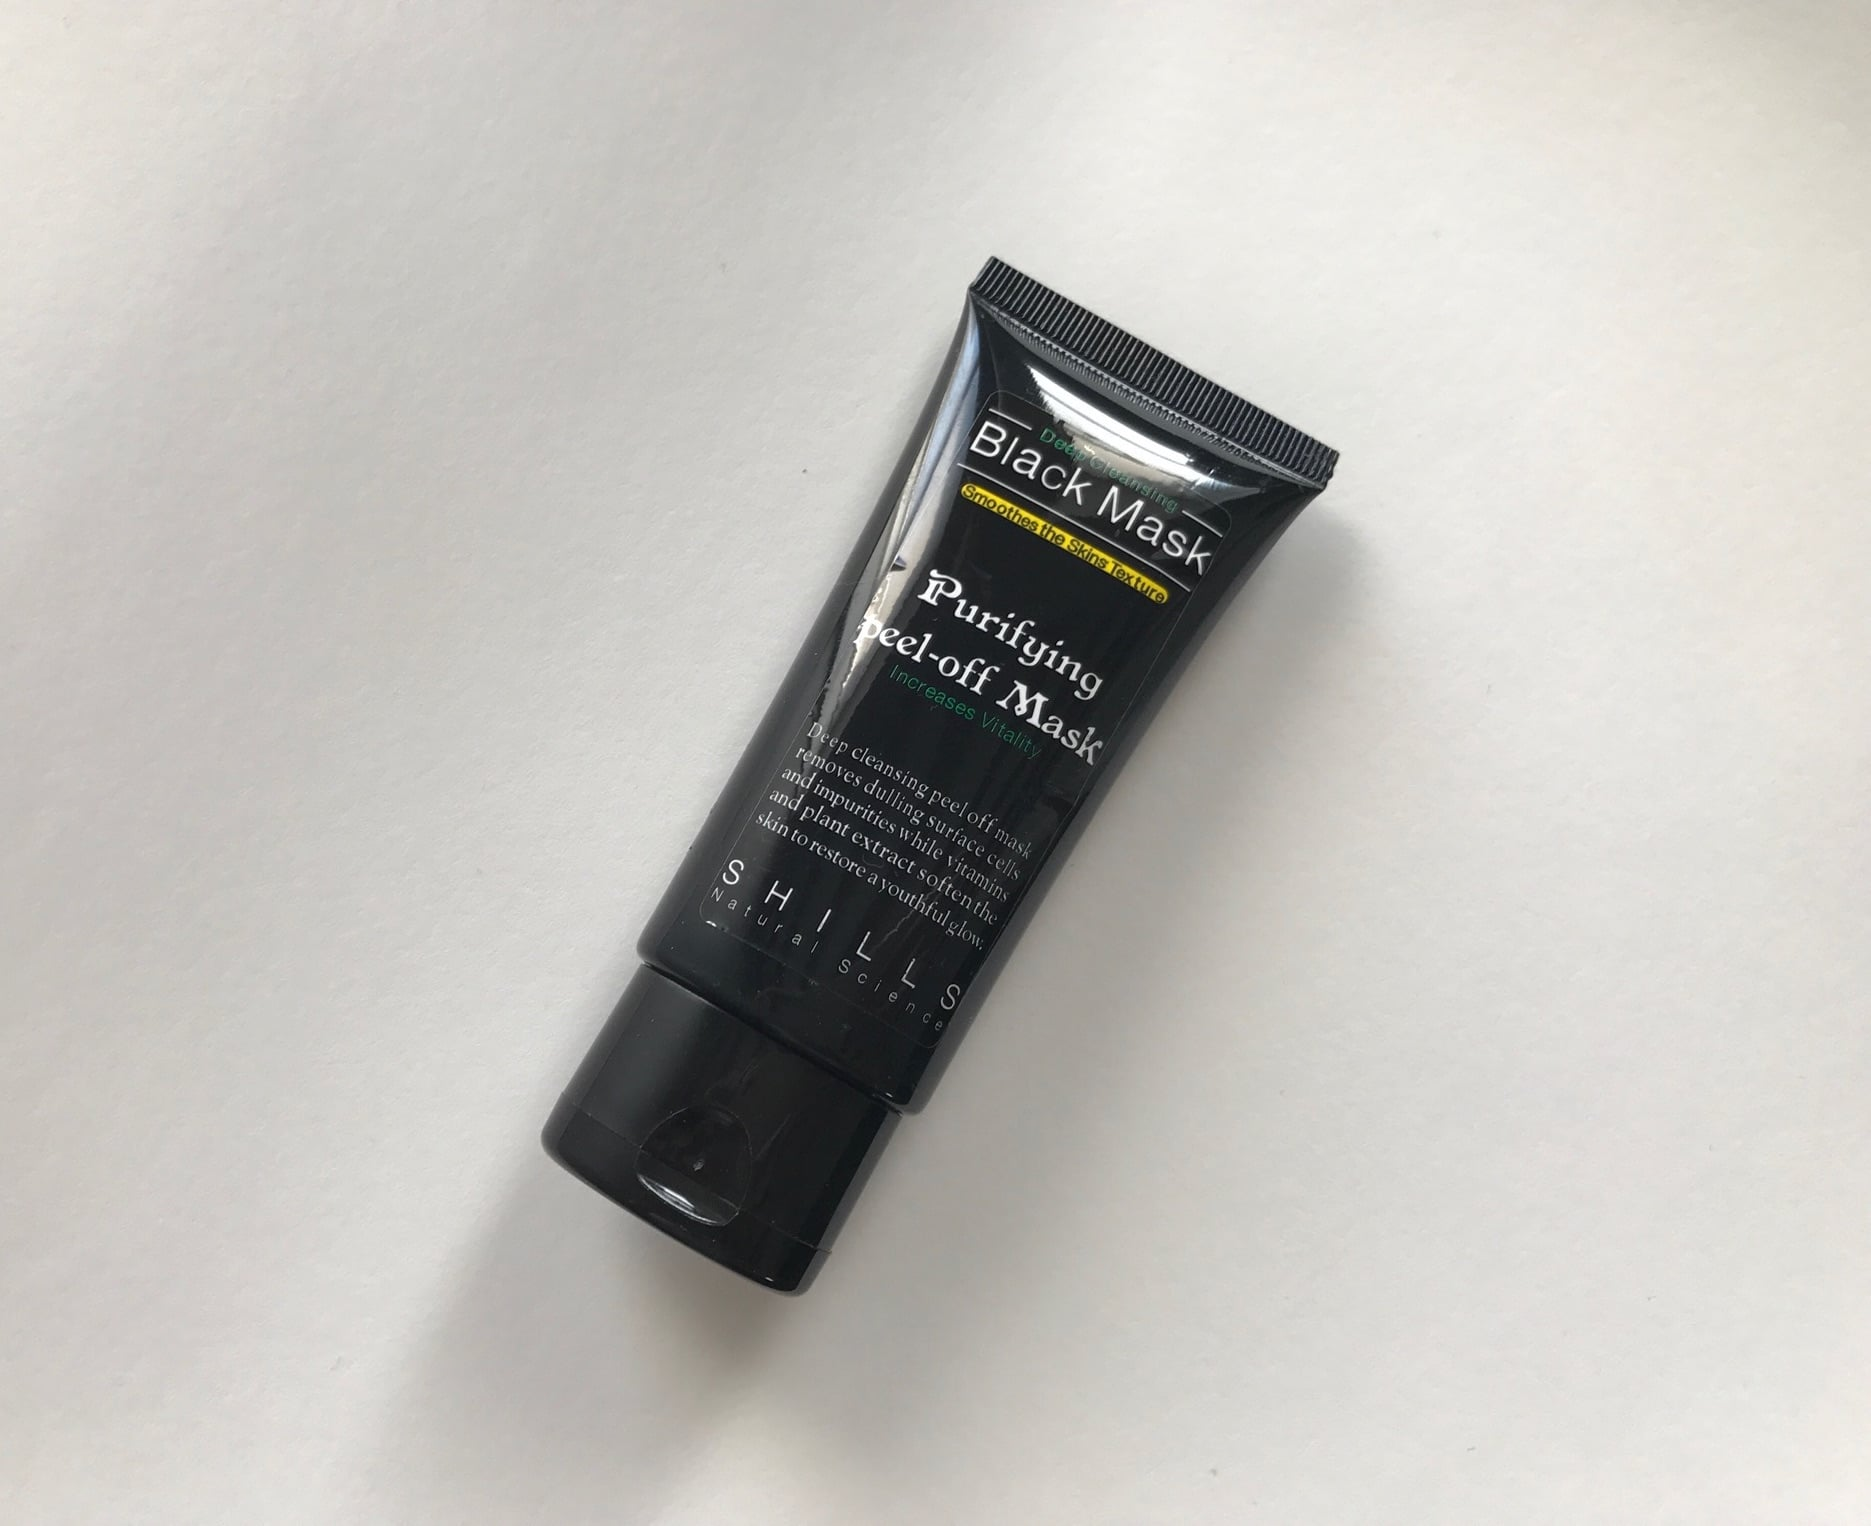 Shills Purifying Black Face Mask Review Popsugar Beauty 2 If Youre Impatient Like Me Dont Buy It Through An Instagram Ad